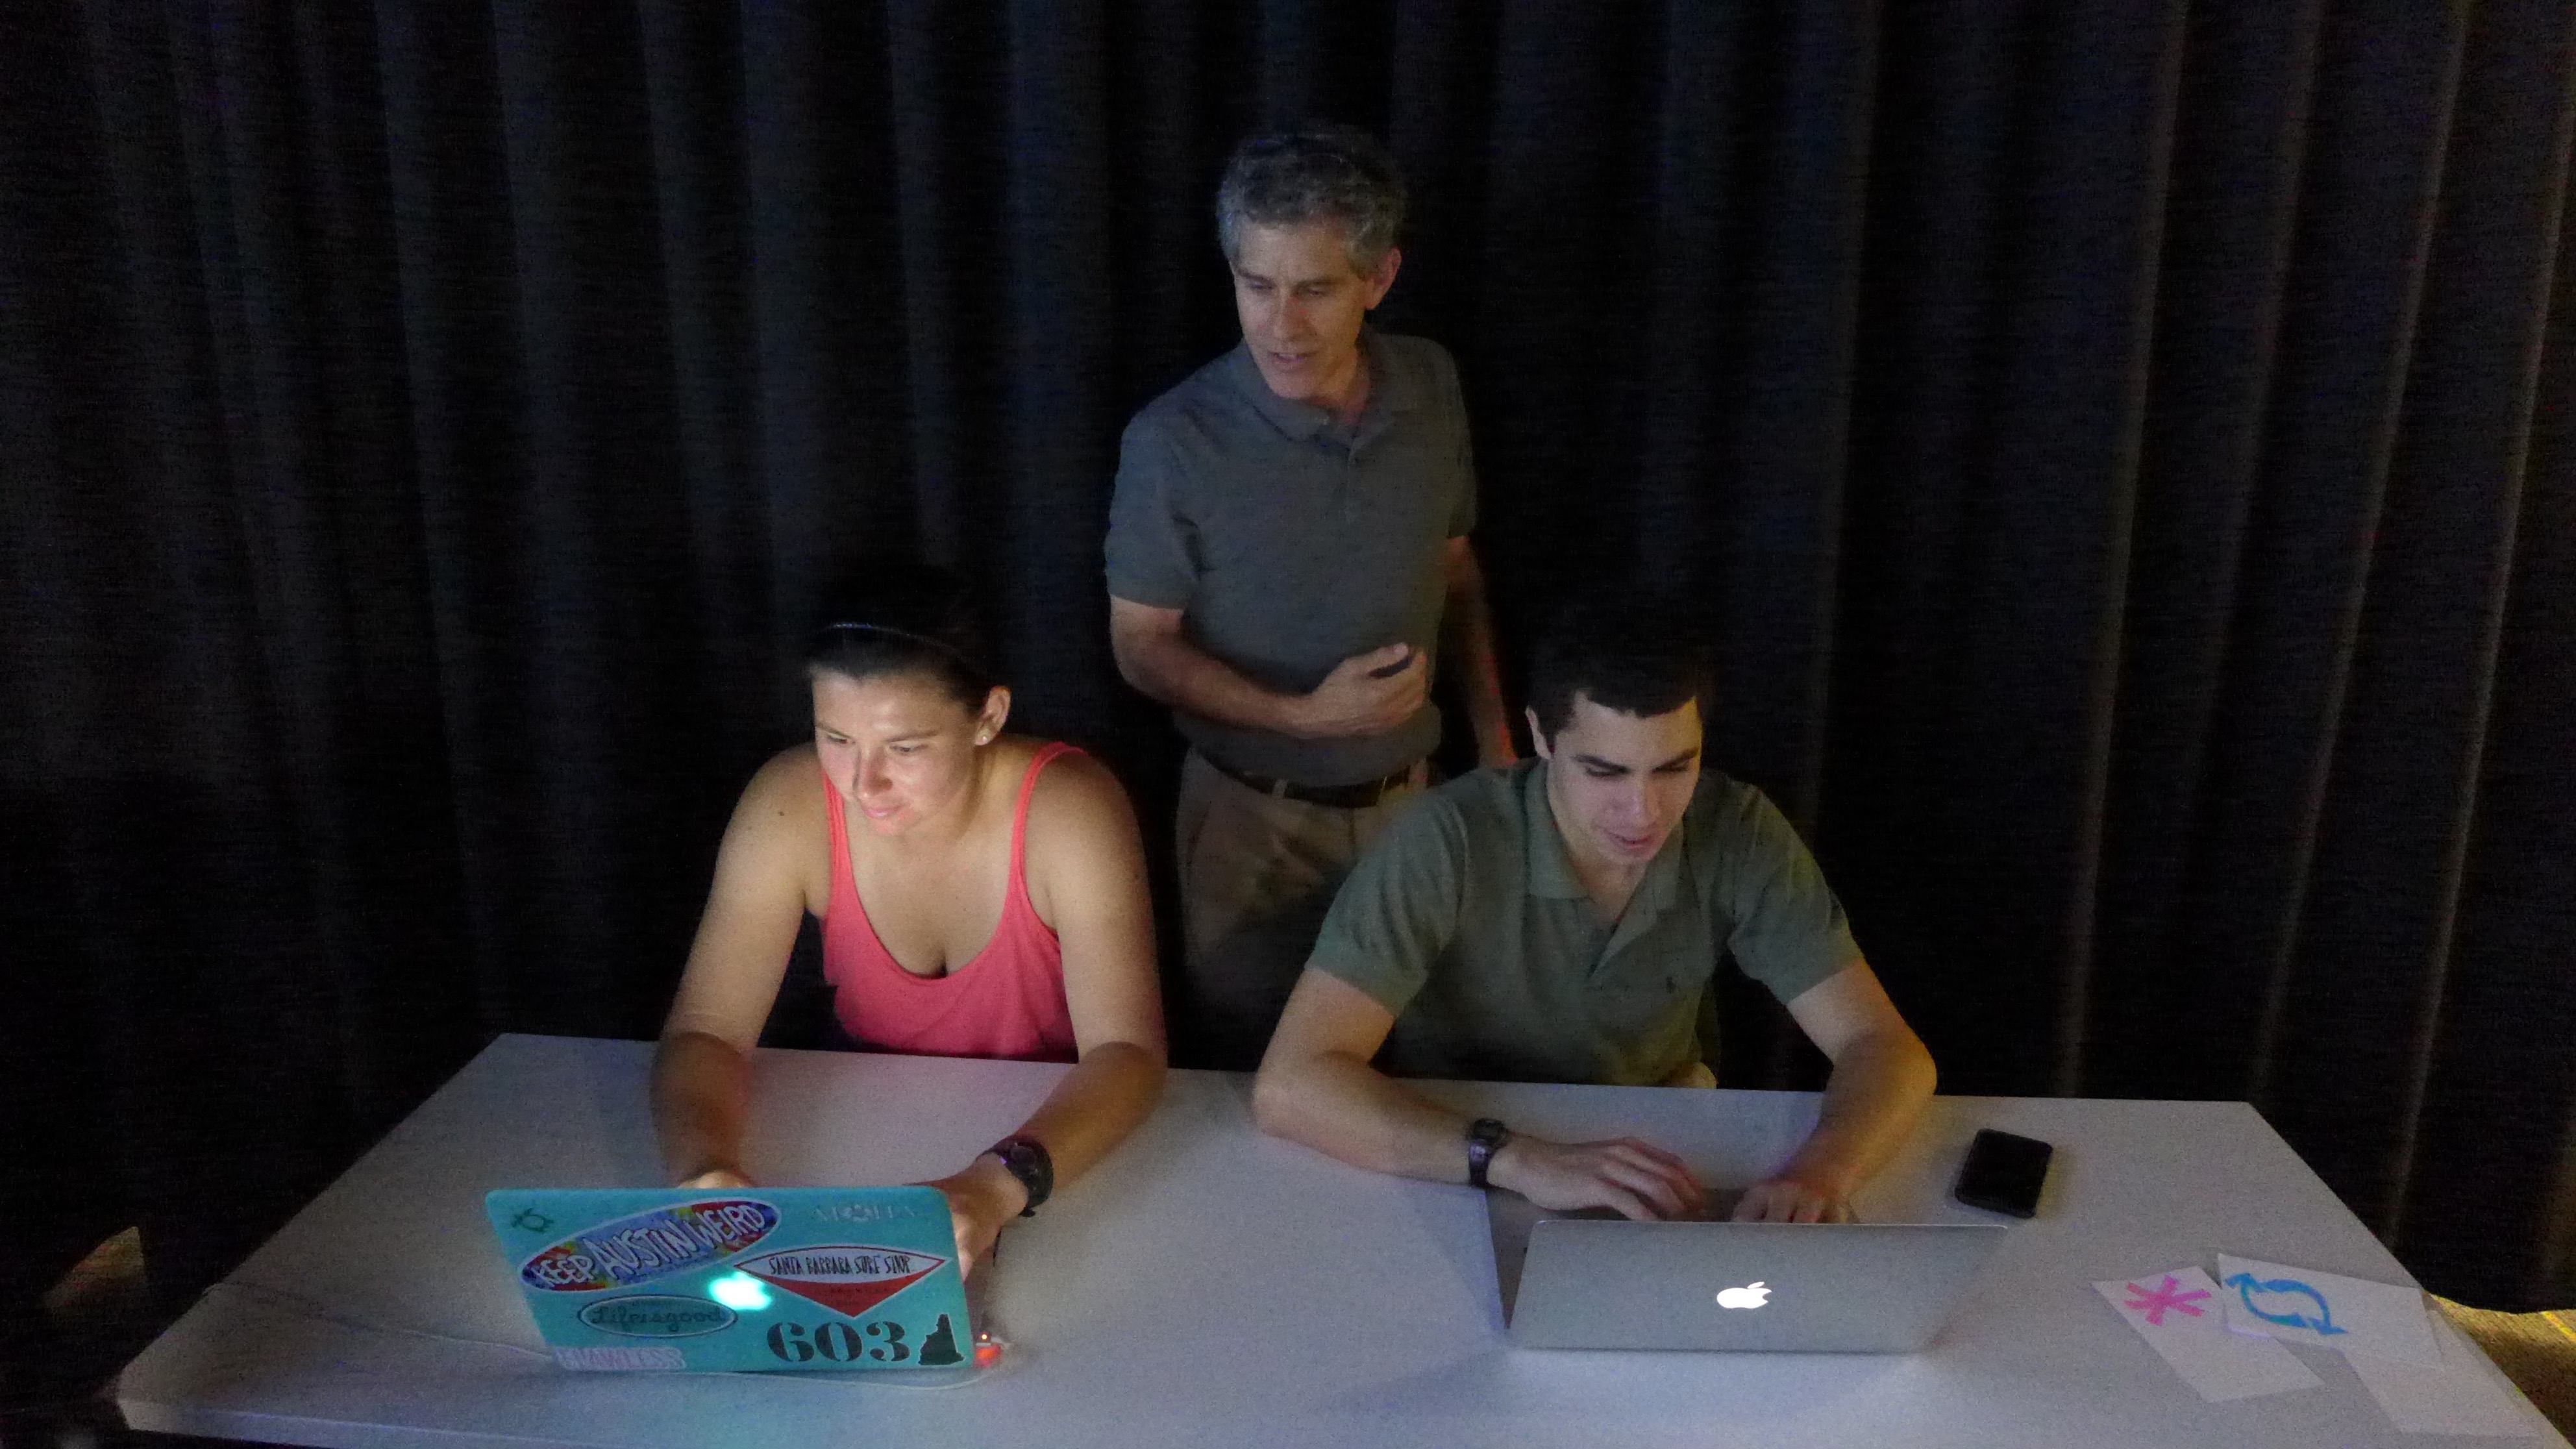 Chloe and Joby with Andy looking at questions